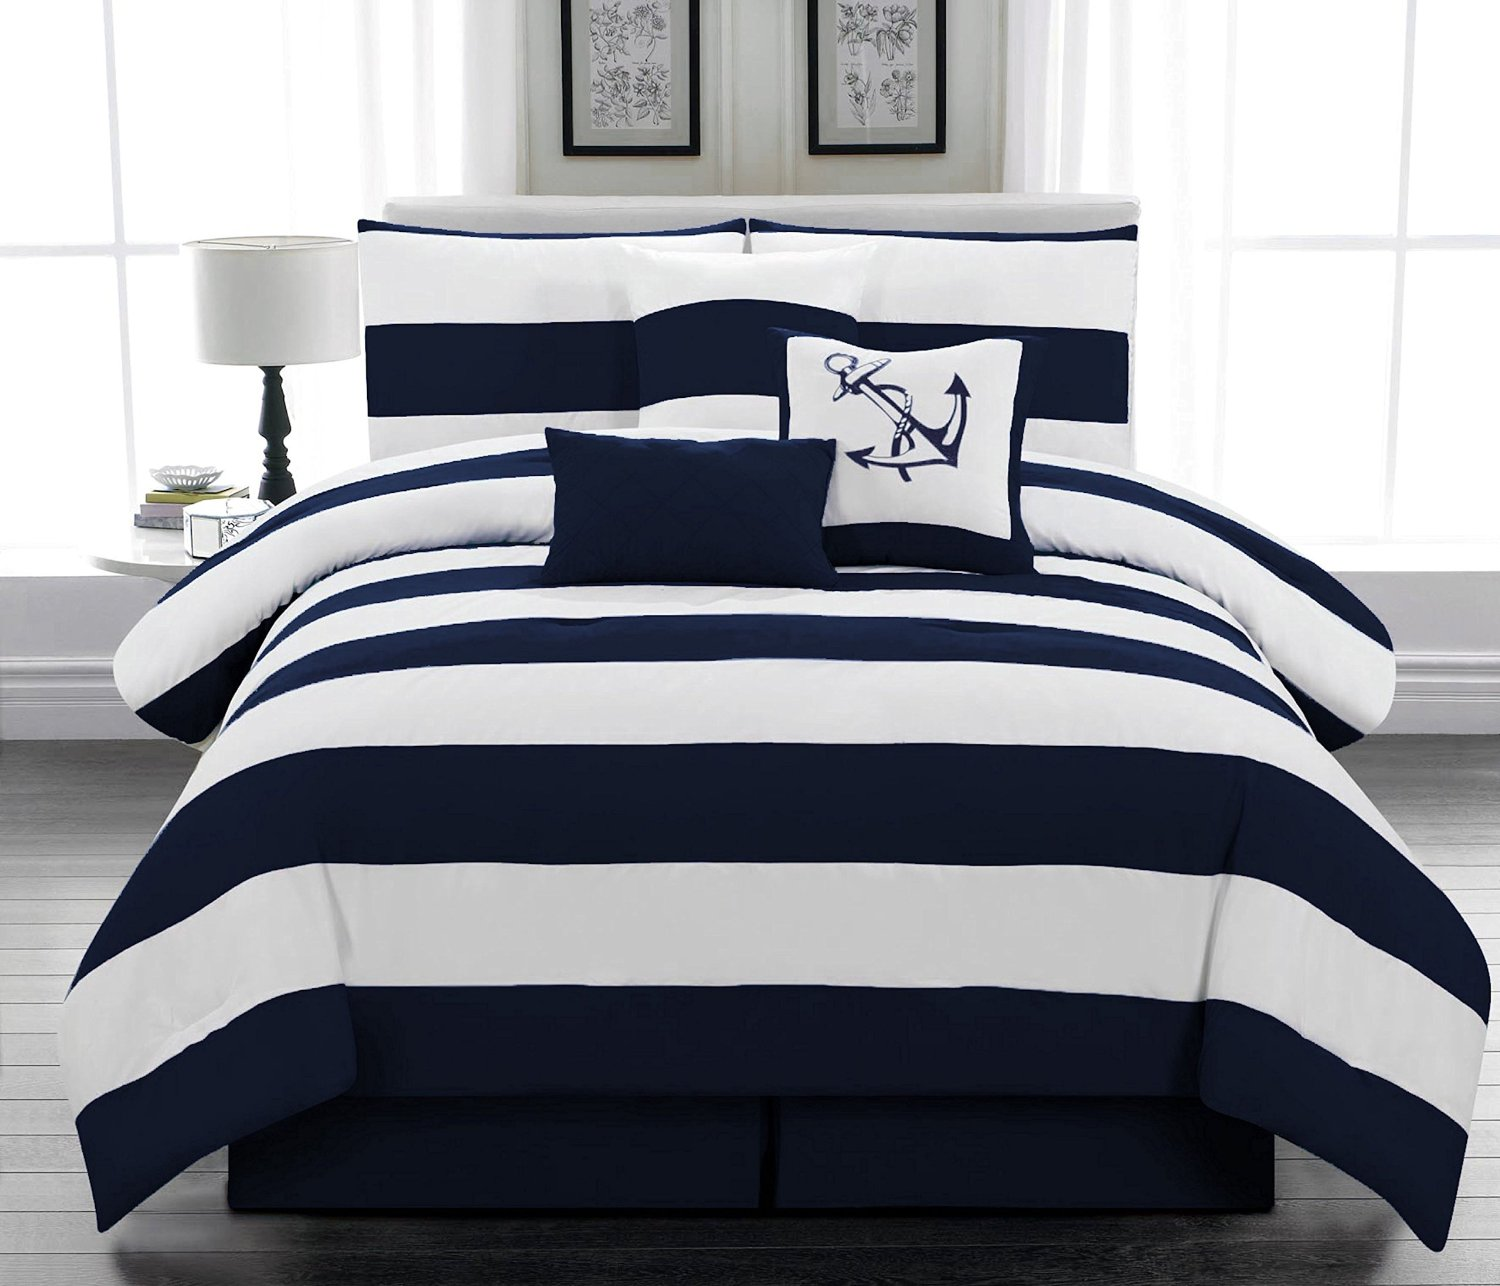 navy blue and white comforter and bedding sets. Black Bedroom Furniture Sets. Home Design Ideas